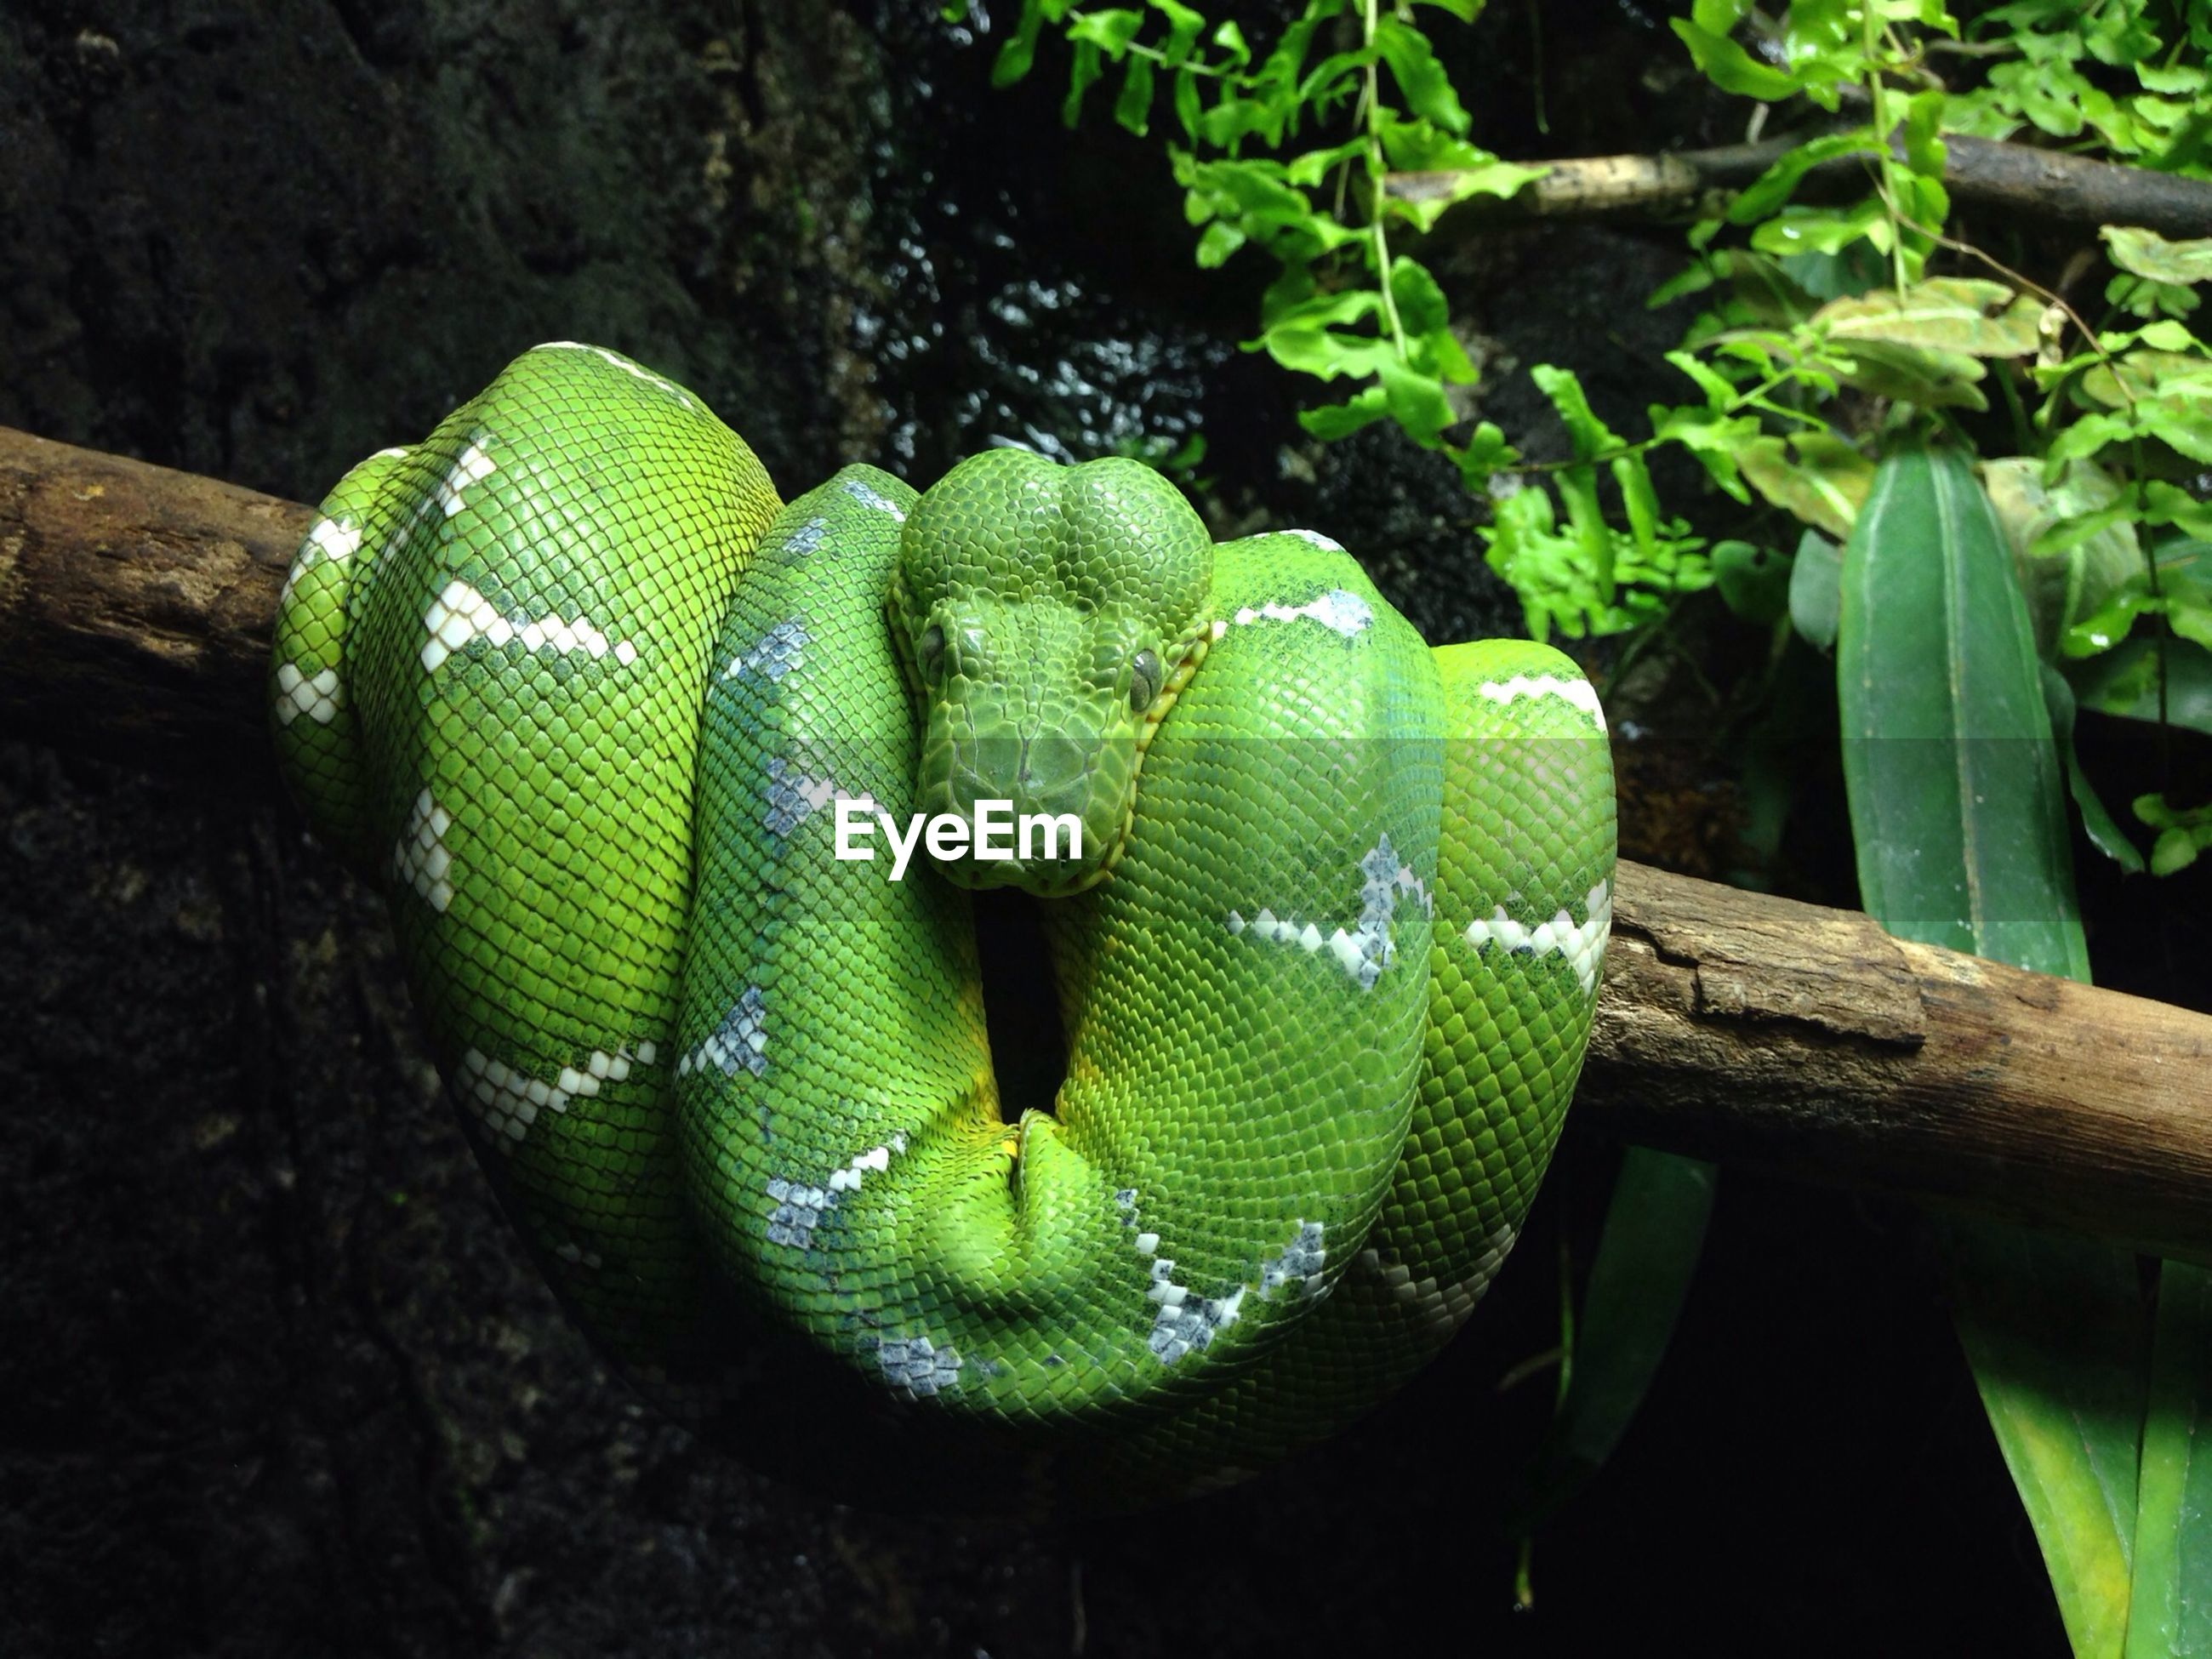 Green snake rolled on wood